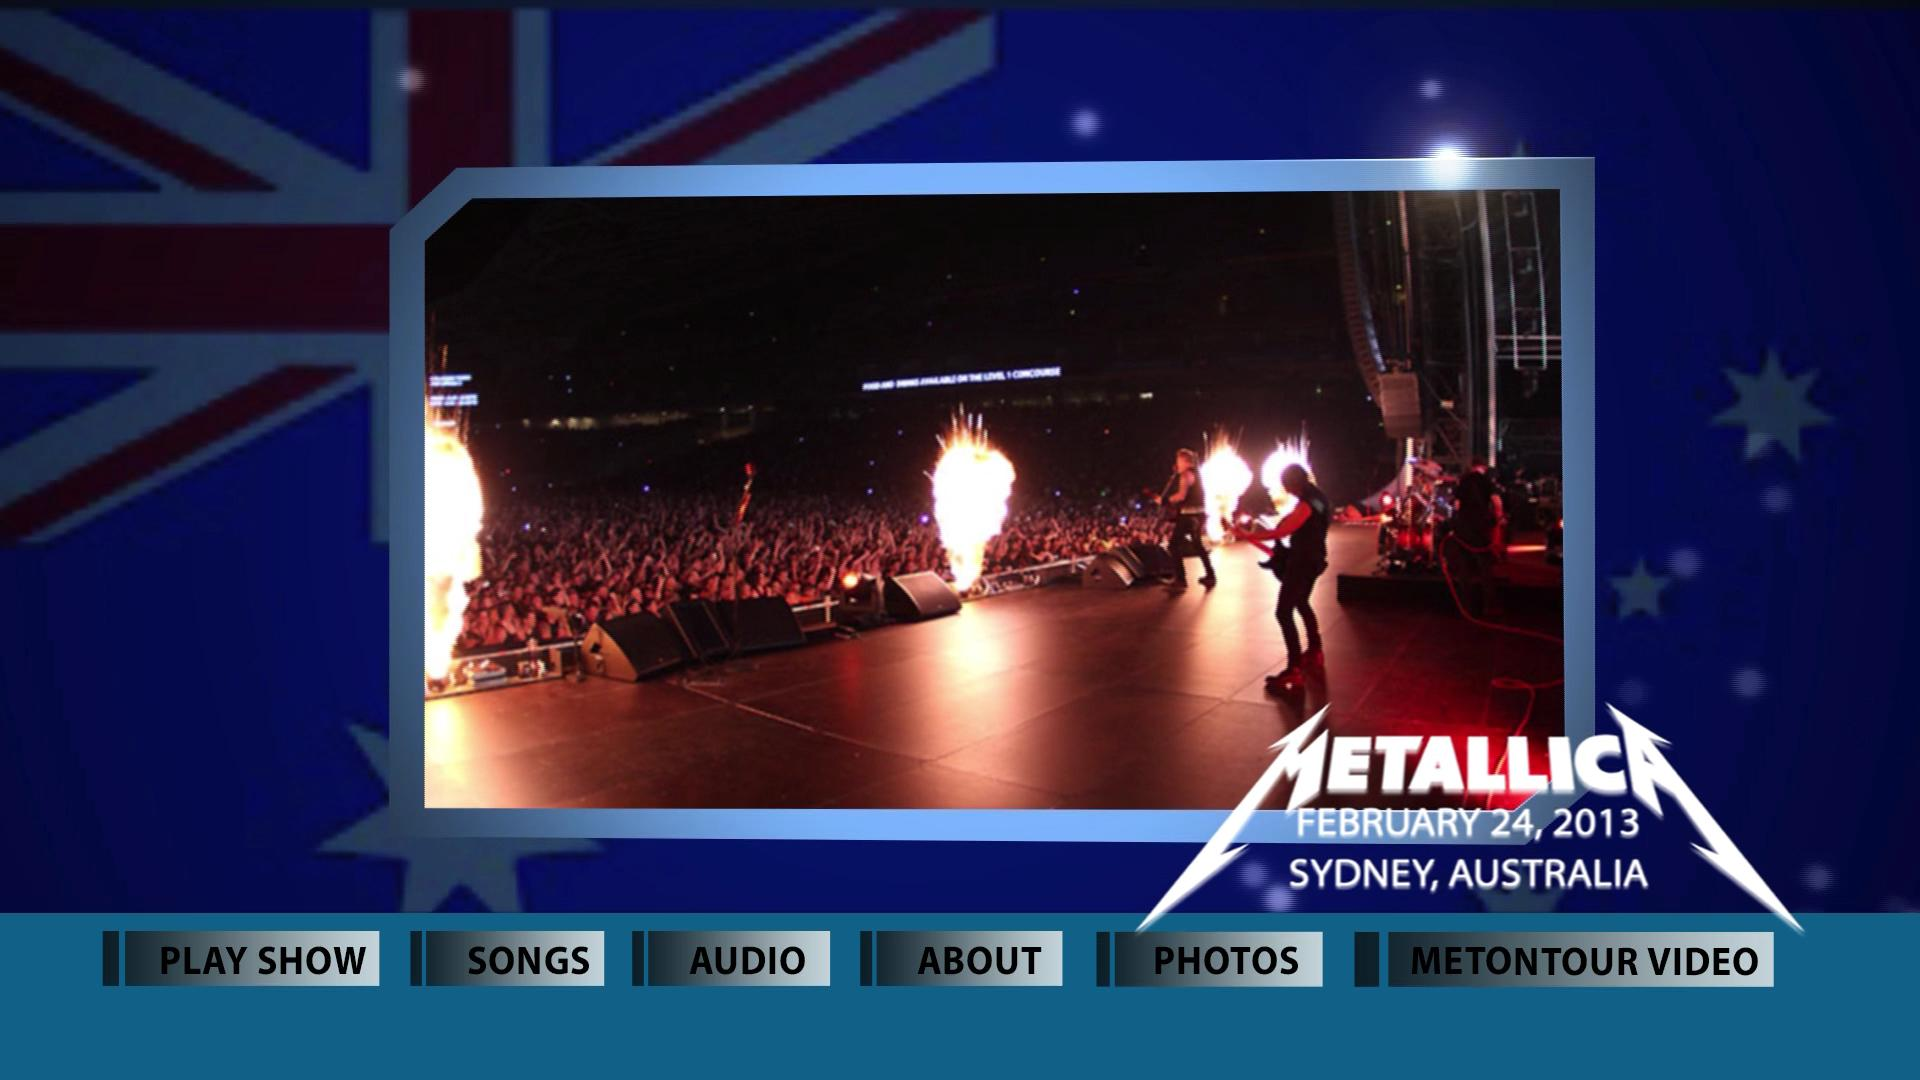 metallica_2013-02-24_sydneyaustralia_screen_01378223635